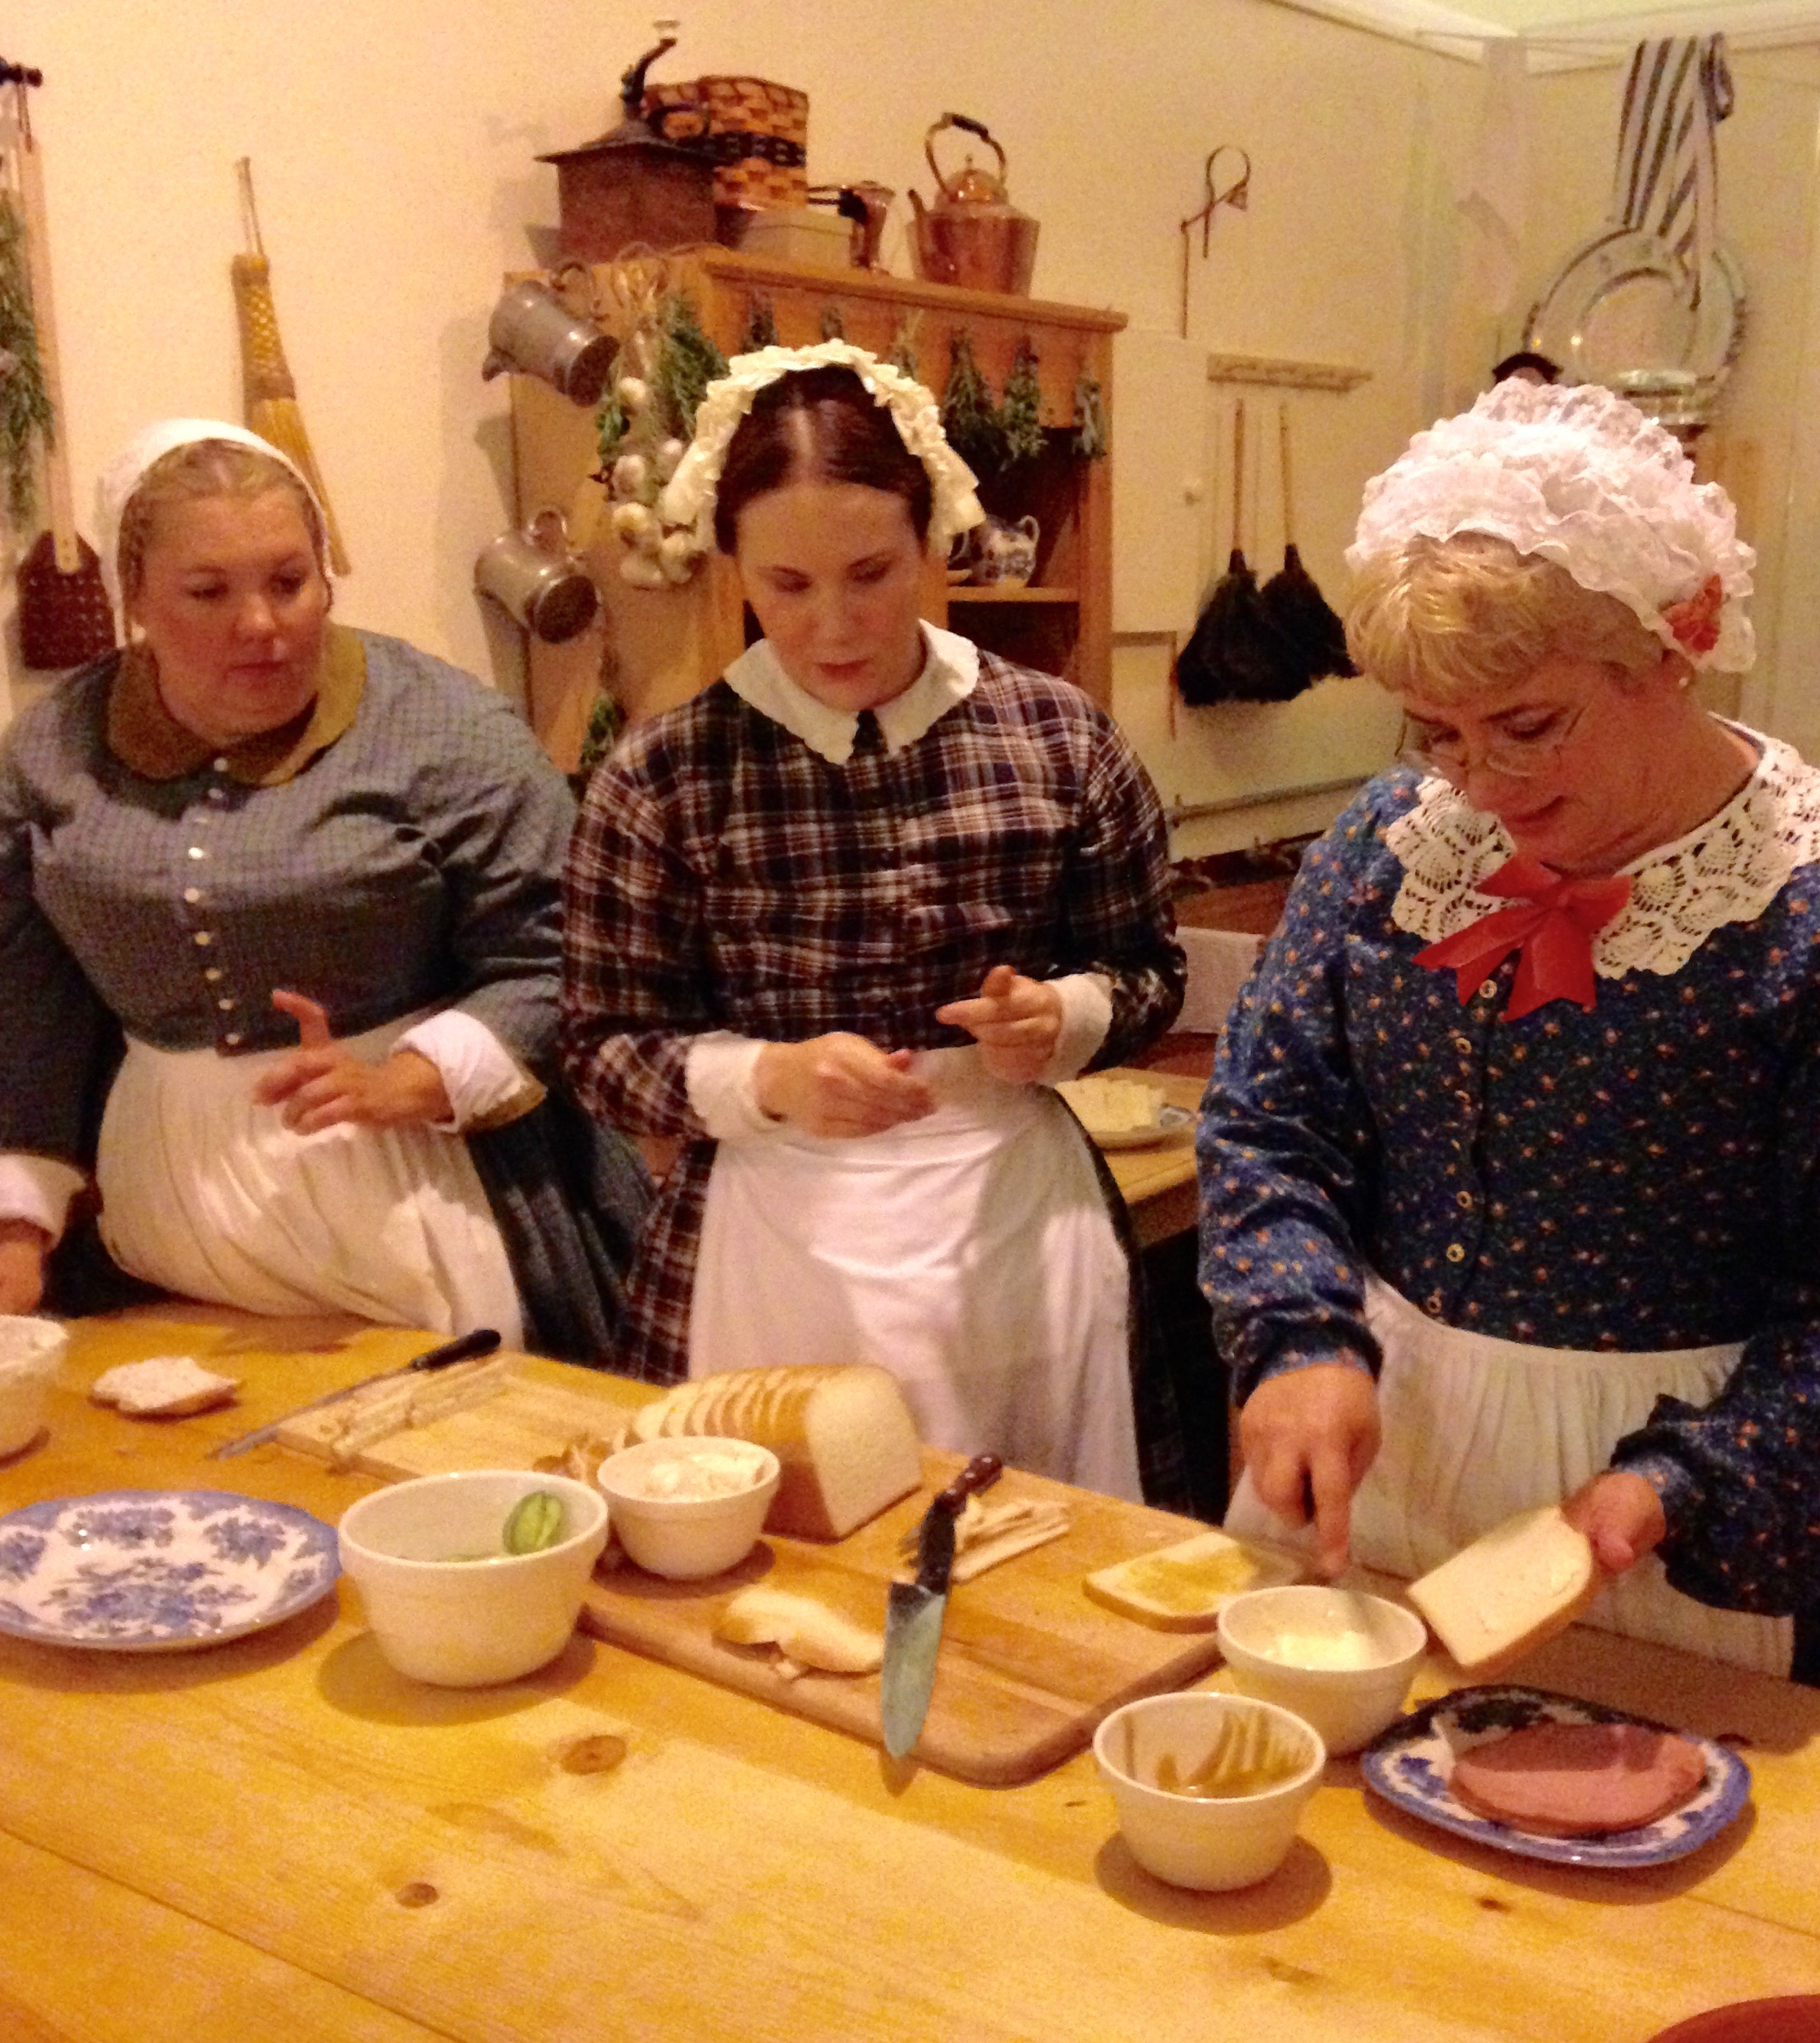 Making tea sandwiches in Dicken's kitchen